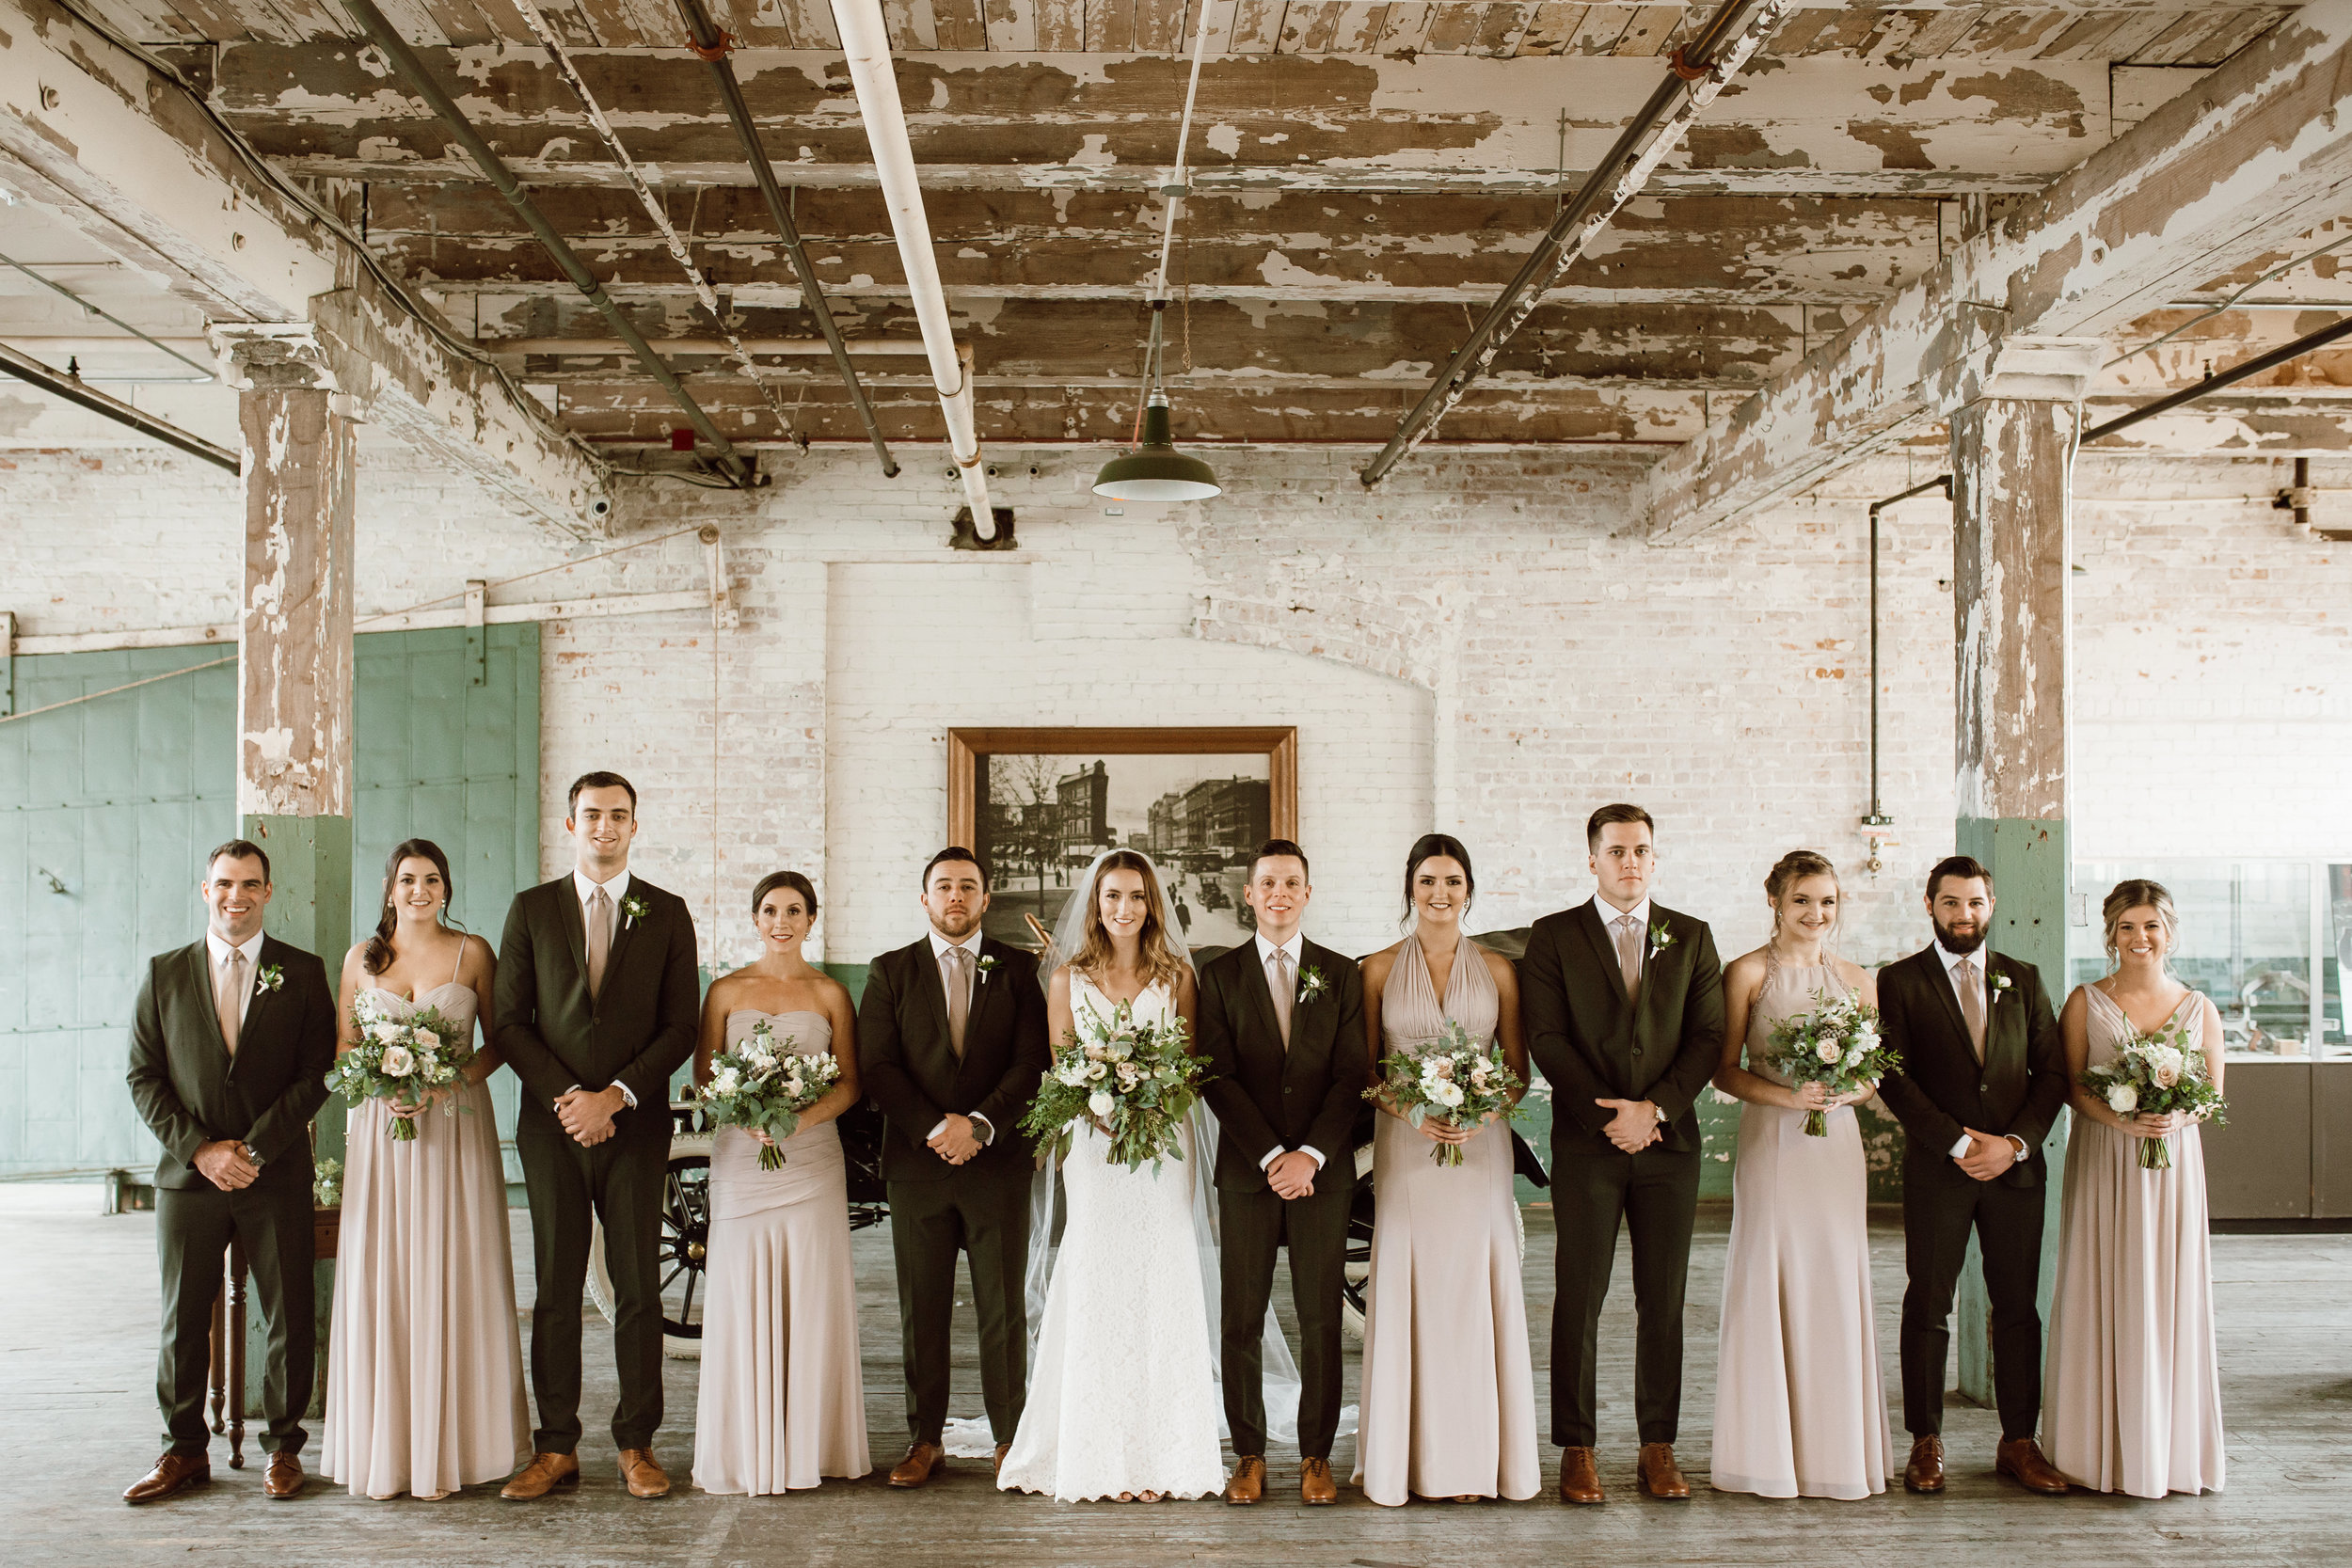 Katie_Vonasek_Photography_Ford_Piquette_Plant_Wedding_Detroit47.JPG